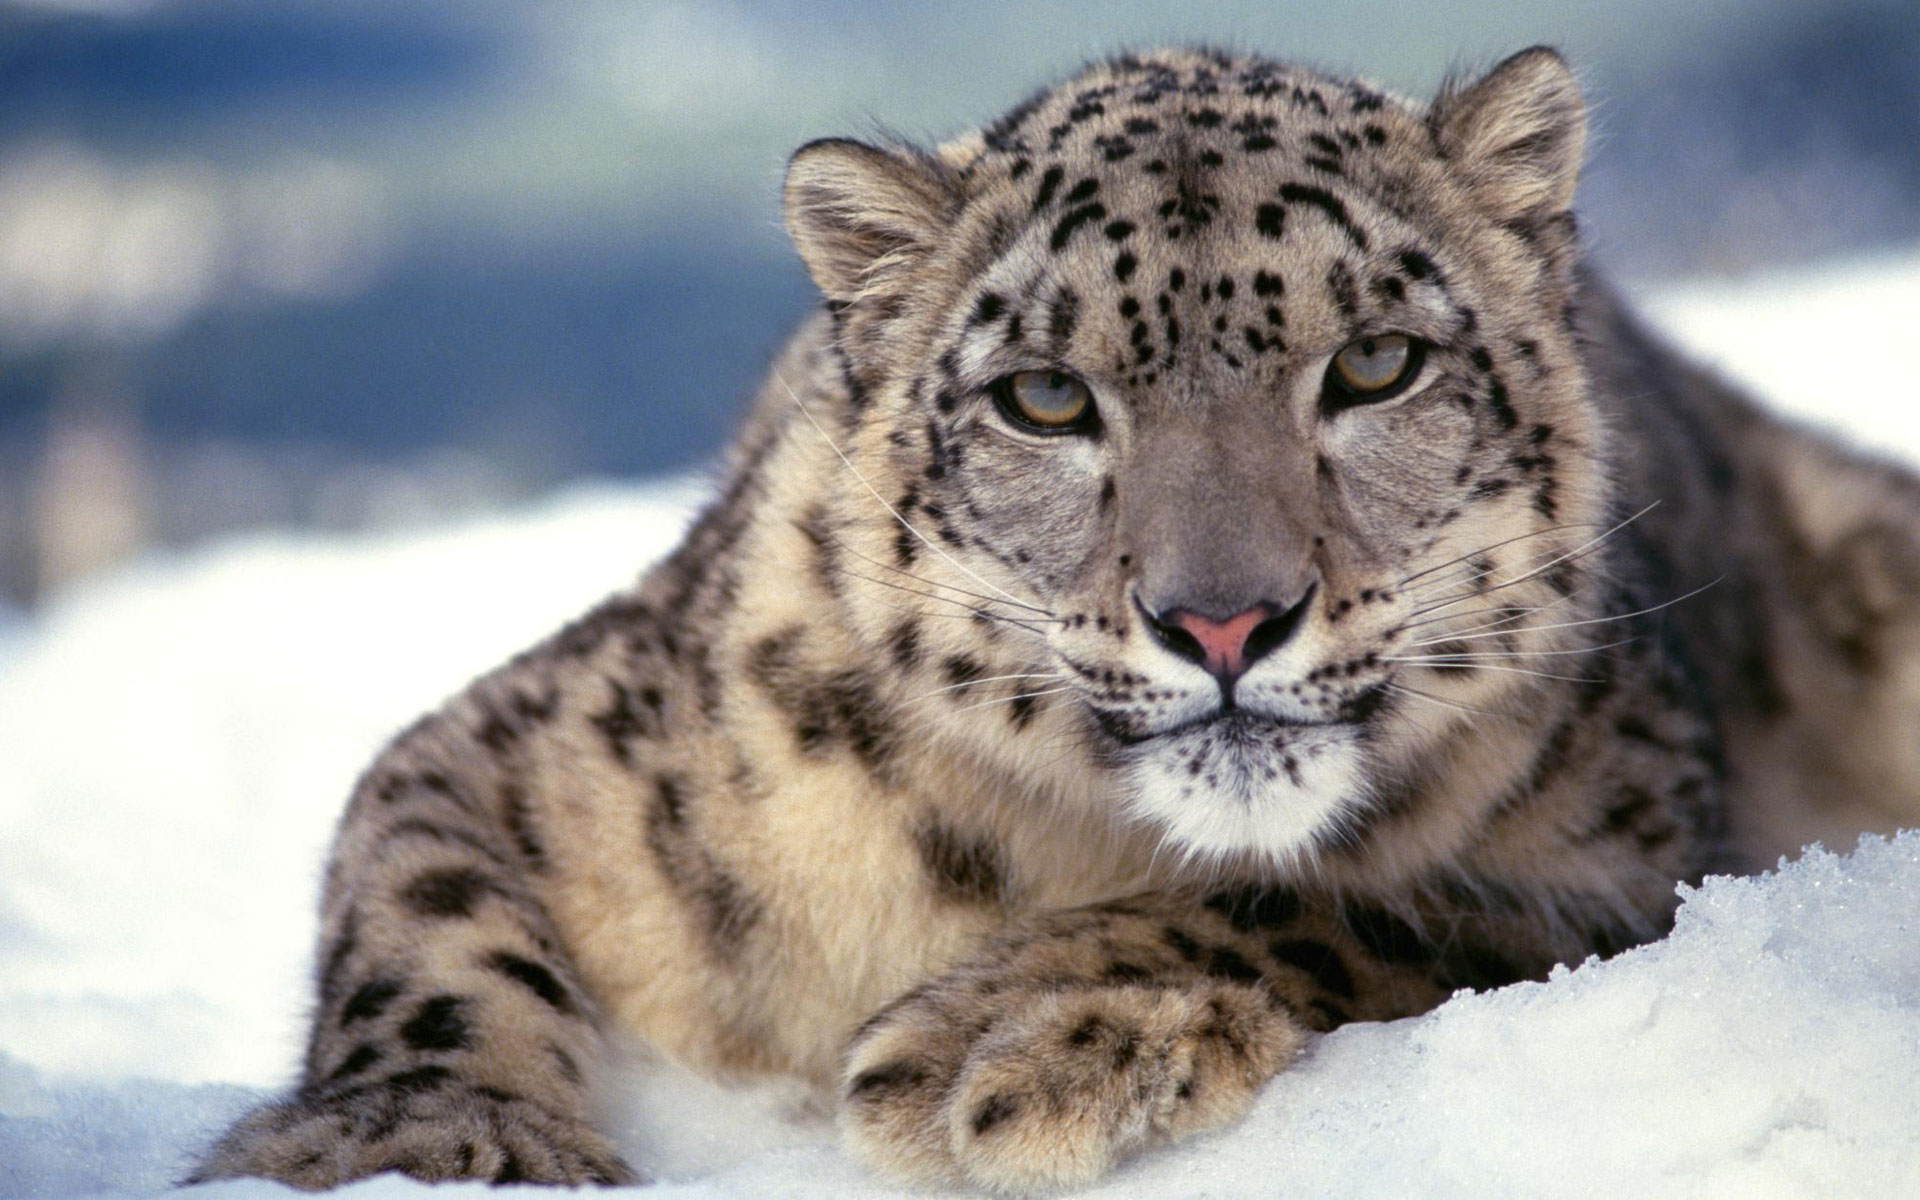 Scary Snow Leopard 970.48 Kb